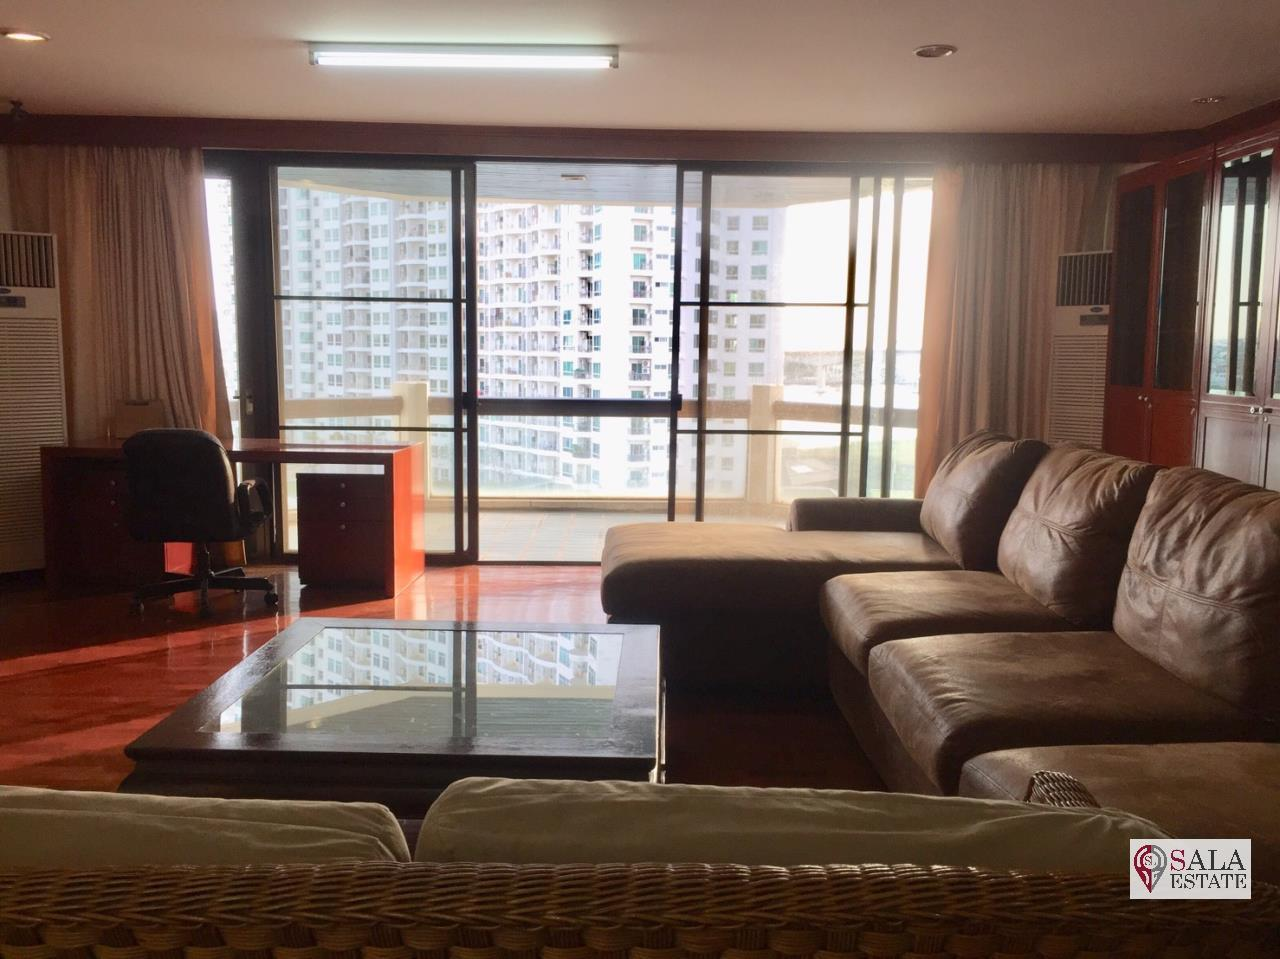 SALA ESTATE Agency's TRIDHOS CITY MARINA – RIVERSIDE-NEAR ICON SIAM-PET ALLOWED, 2 Bedroom 2 Bathroom, Fully furnished, River View 4